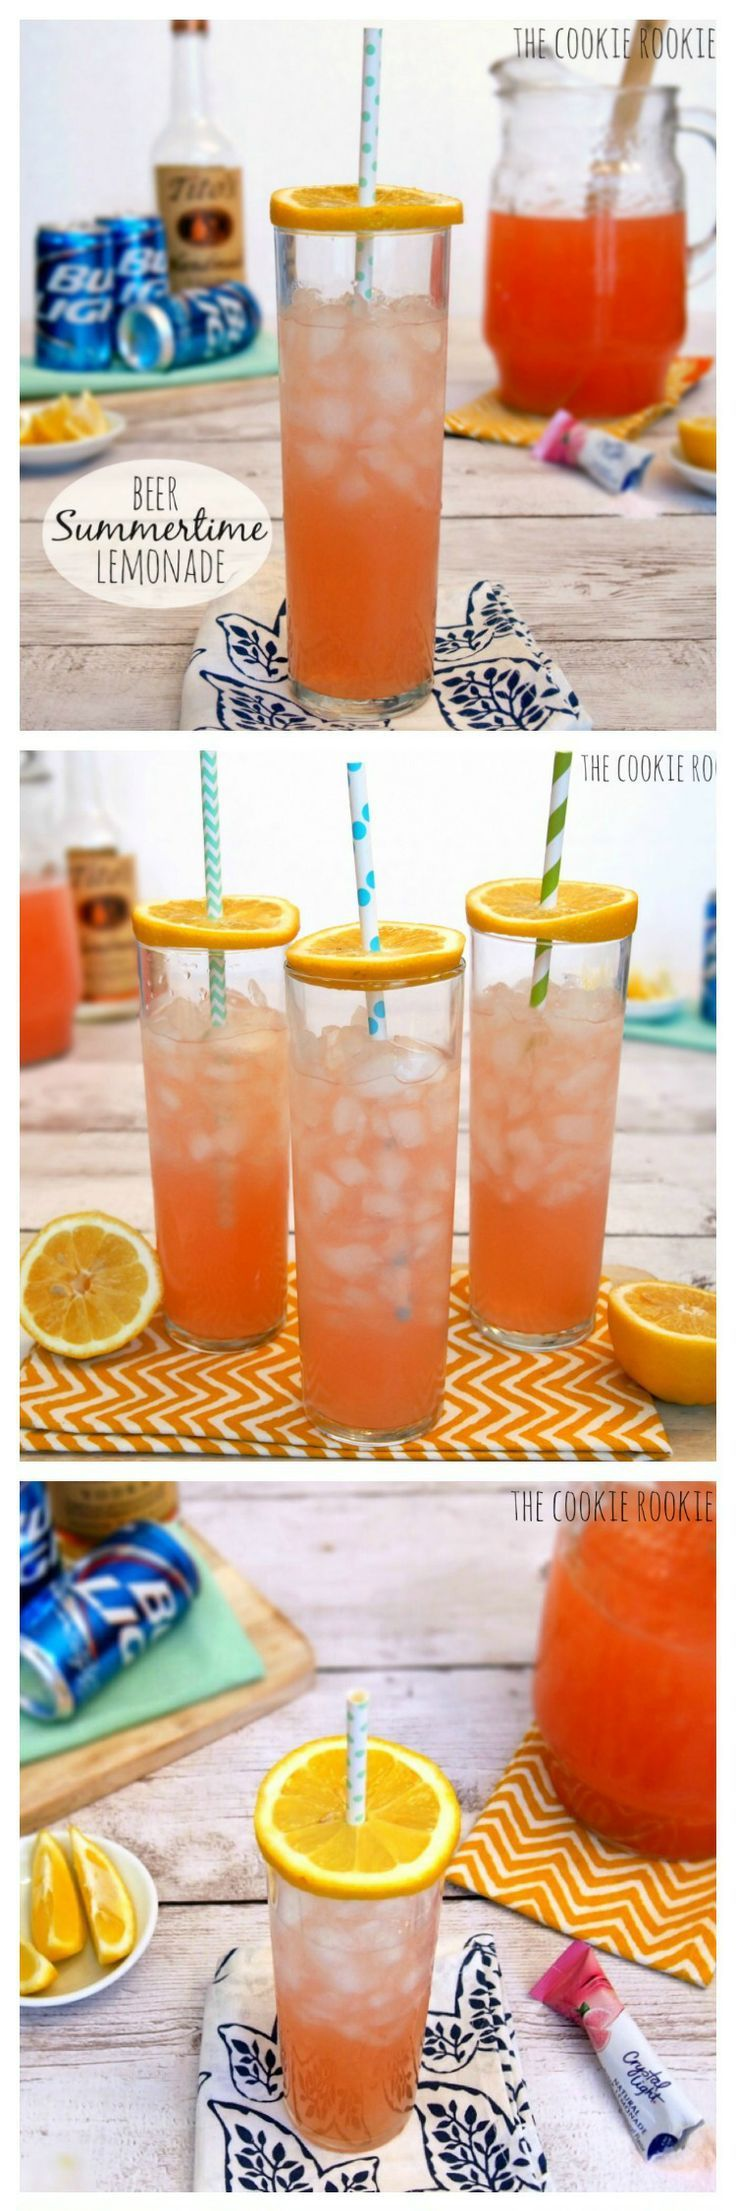 Pink Summer Shandy - omg delicious!